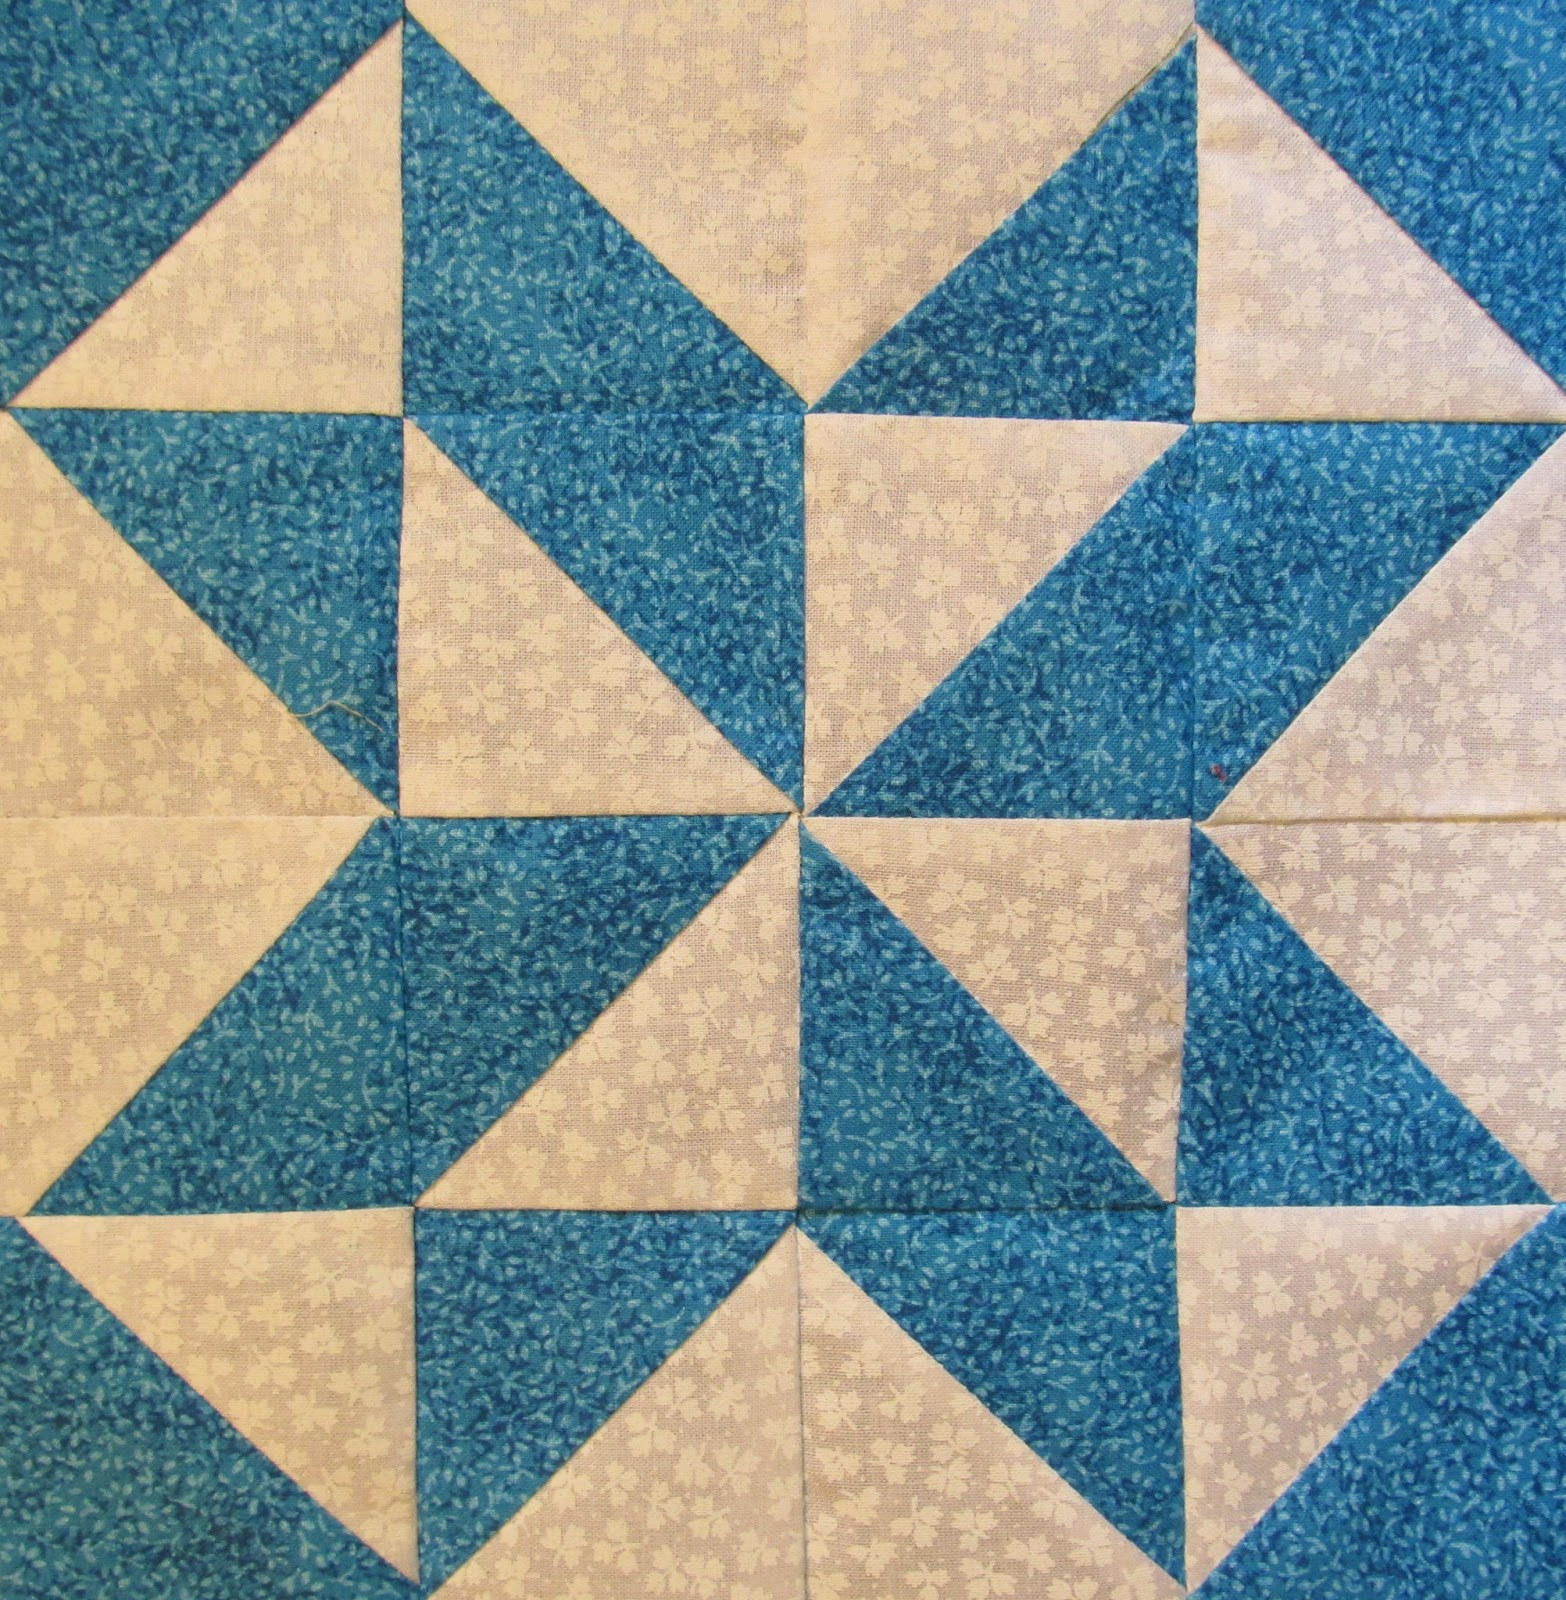 Free Quilt Patterns And Blocks : The Quilt Ladies Book Collection: Star Quilt Block Pattern for YOU